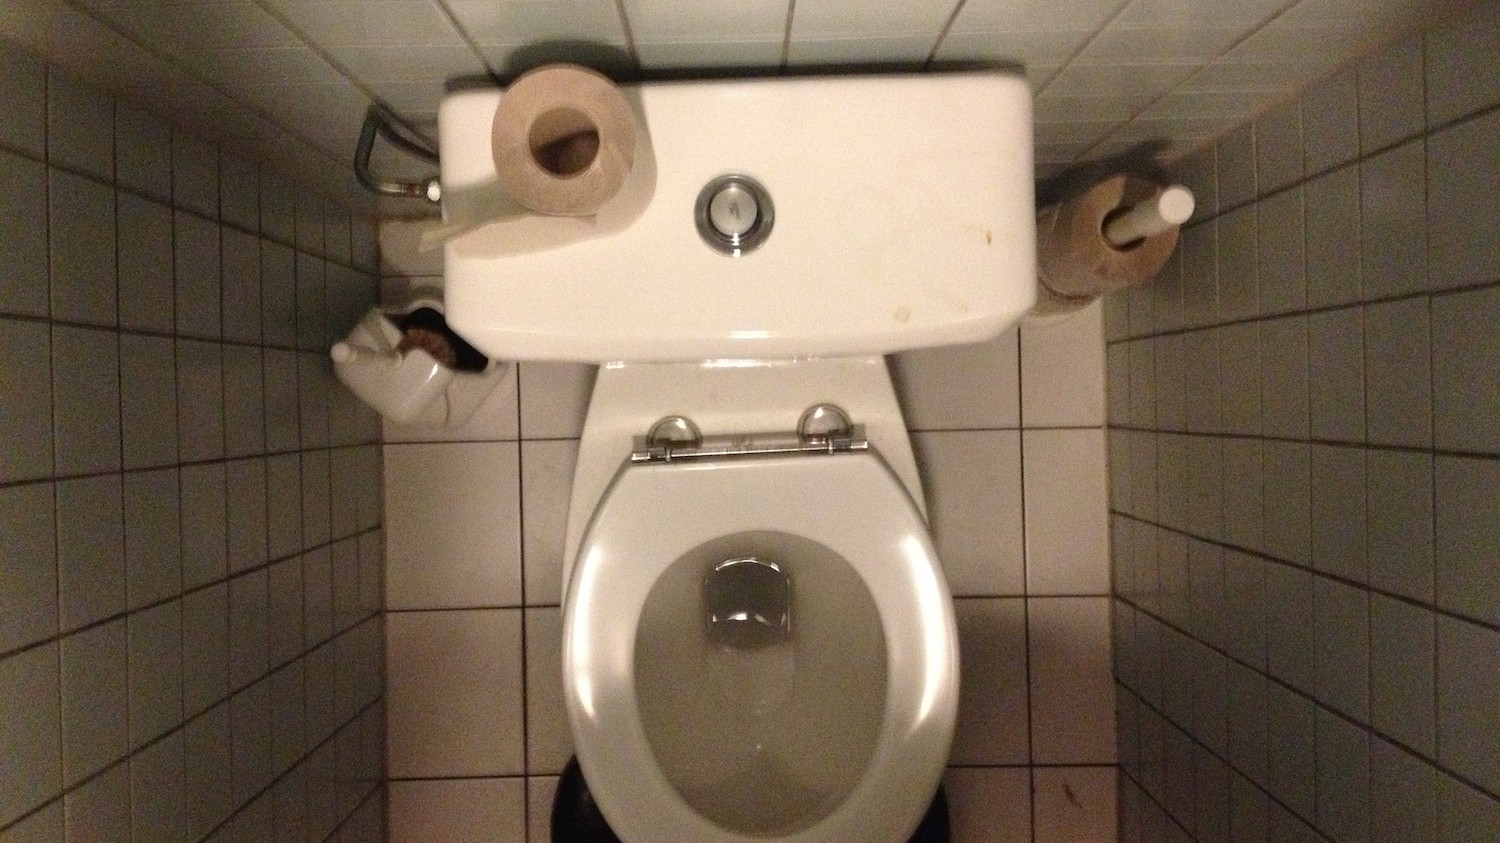 toilet seat. Photo by dirtyboxface via Flickr It s Totally OK to Sit on Public Toilet Seats  Broadly